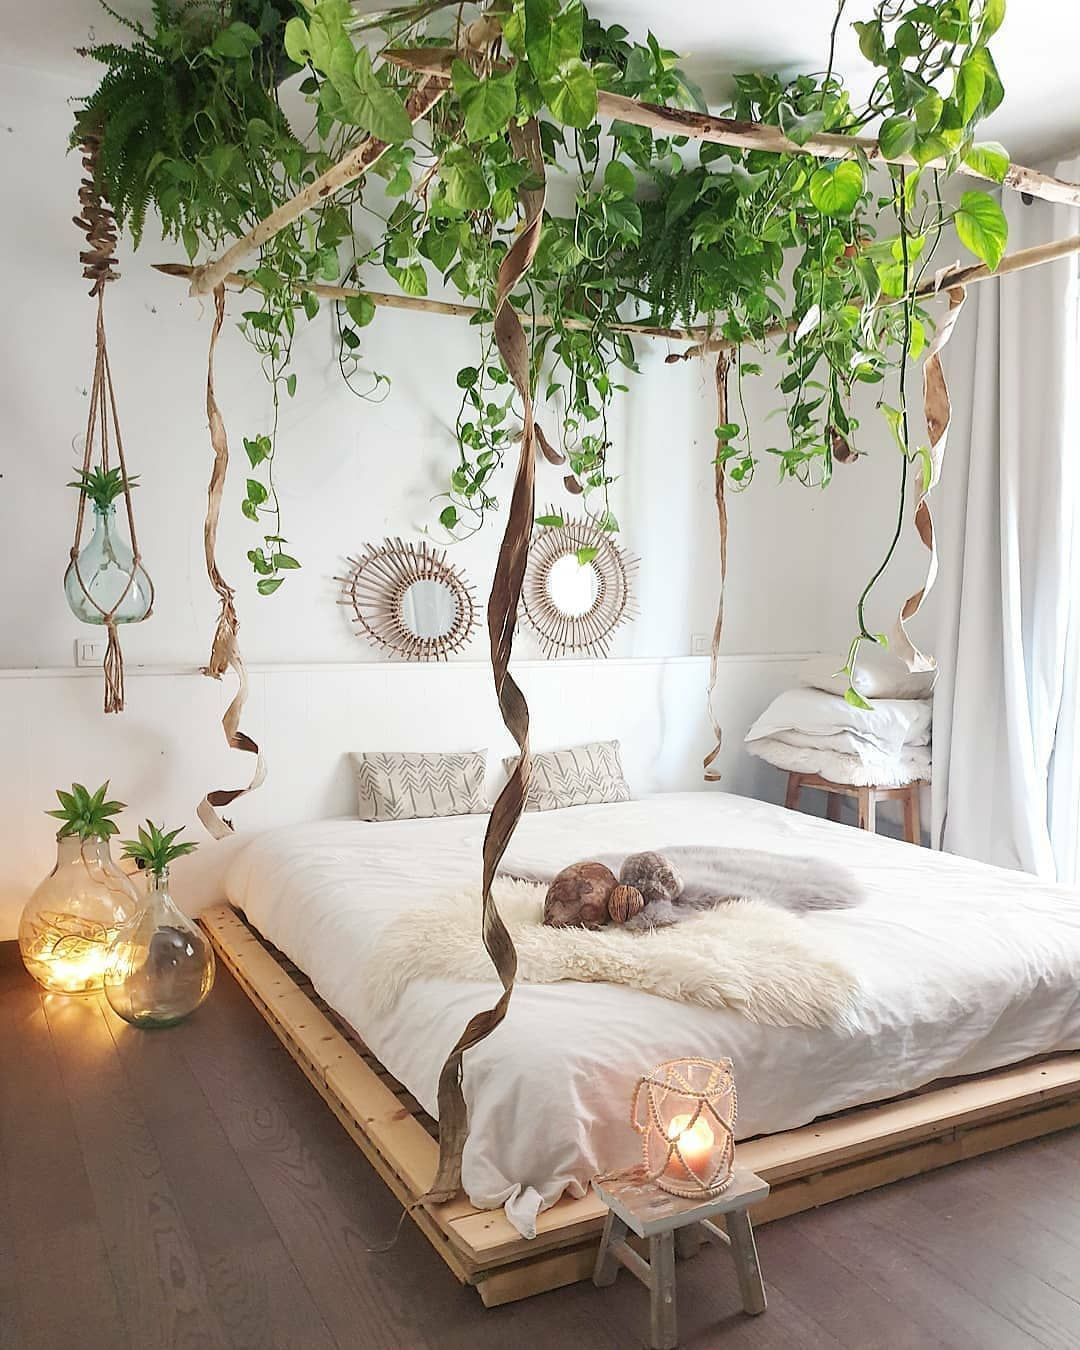 How To Style A Canopy Bed So It Looks Trendy – Instagram Ideas